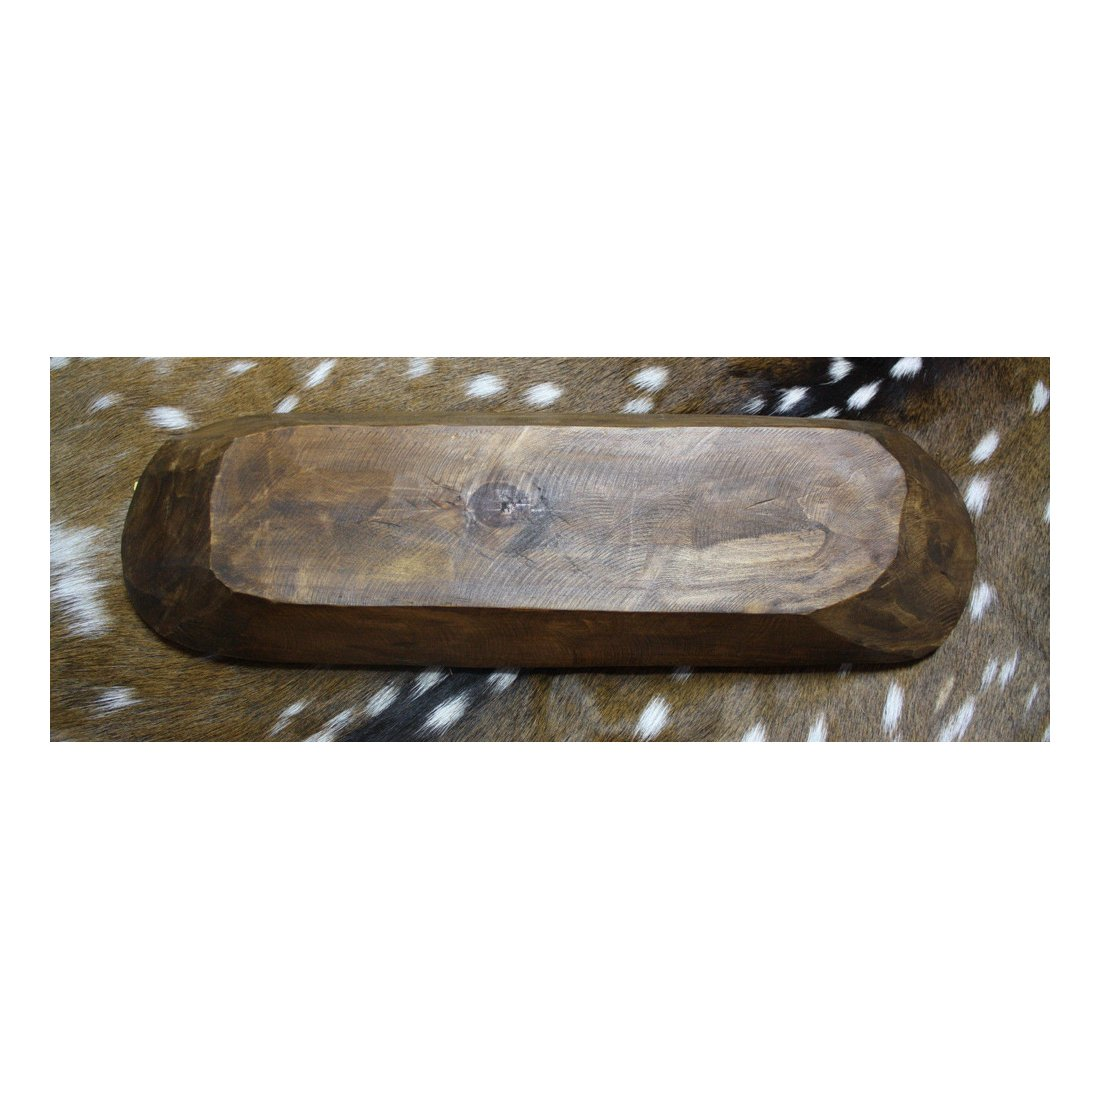 Carved Wooden Bowl Primitive Wood Trencher Tray Rustic Home Decor Guaranteed Quality